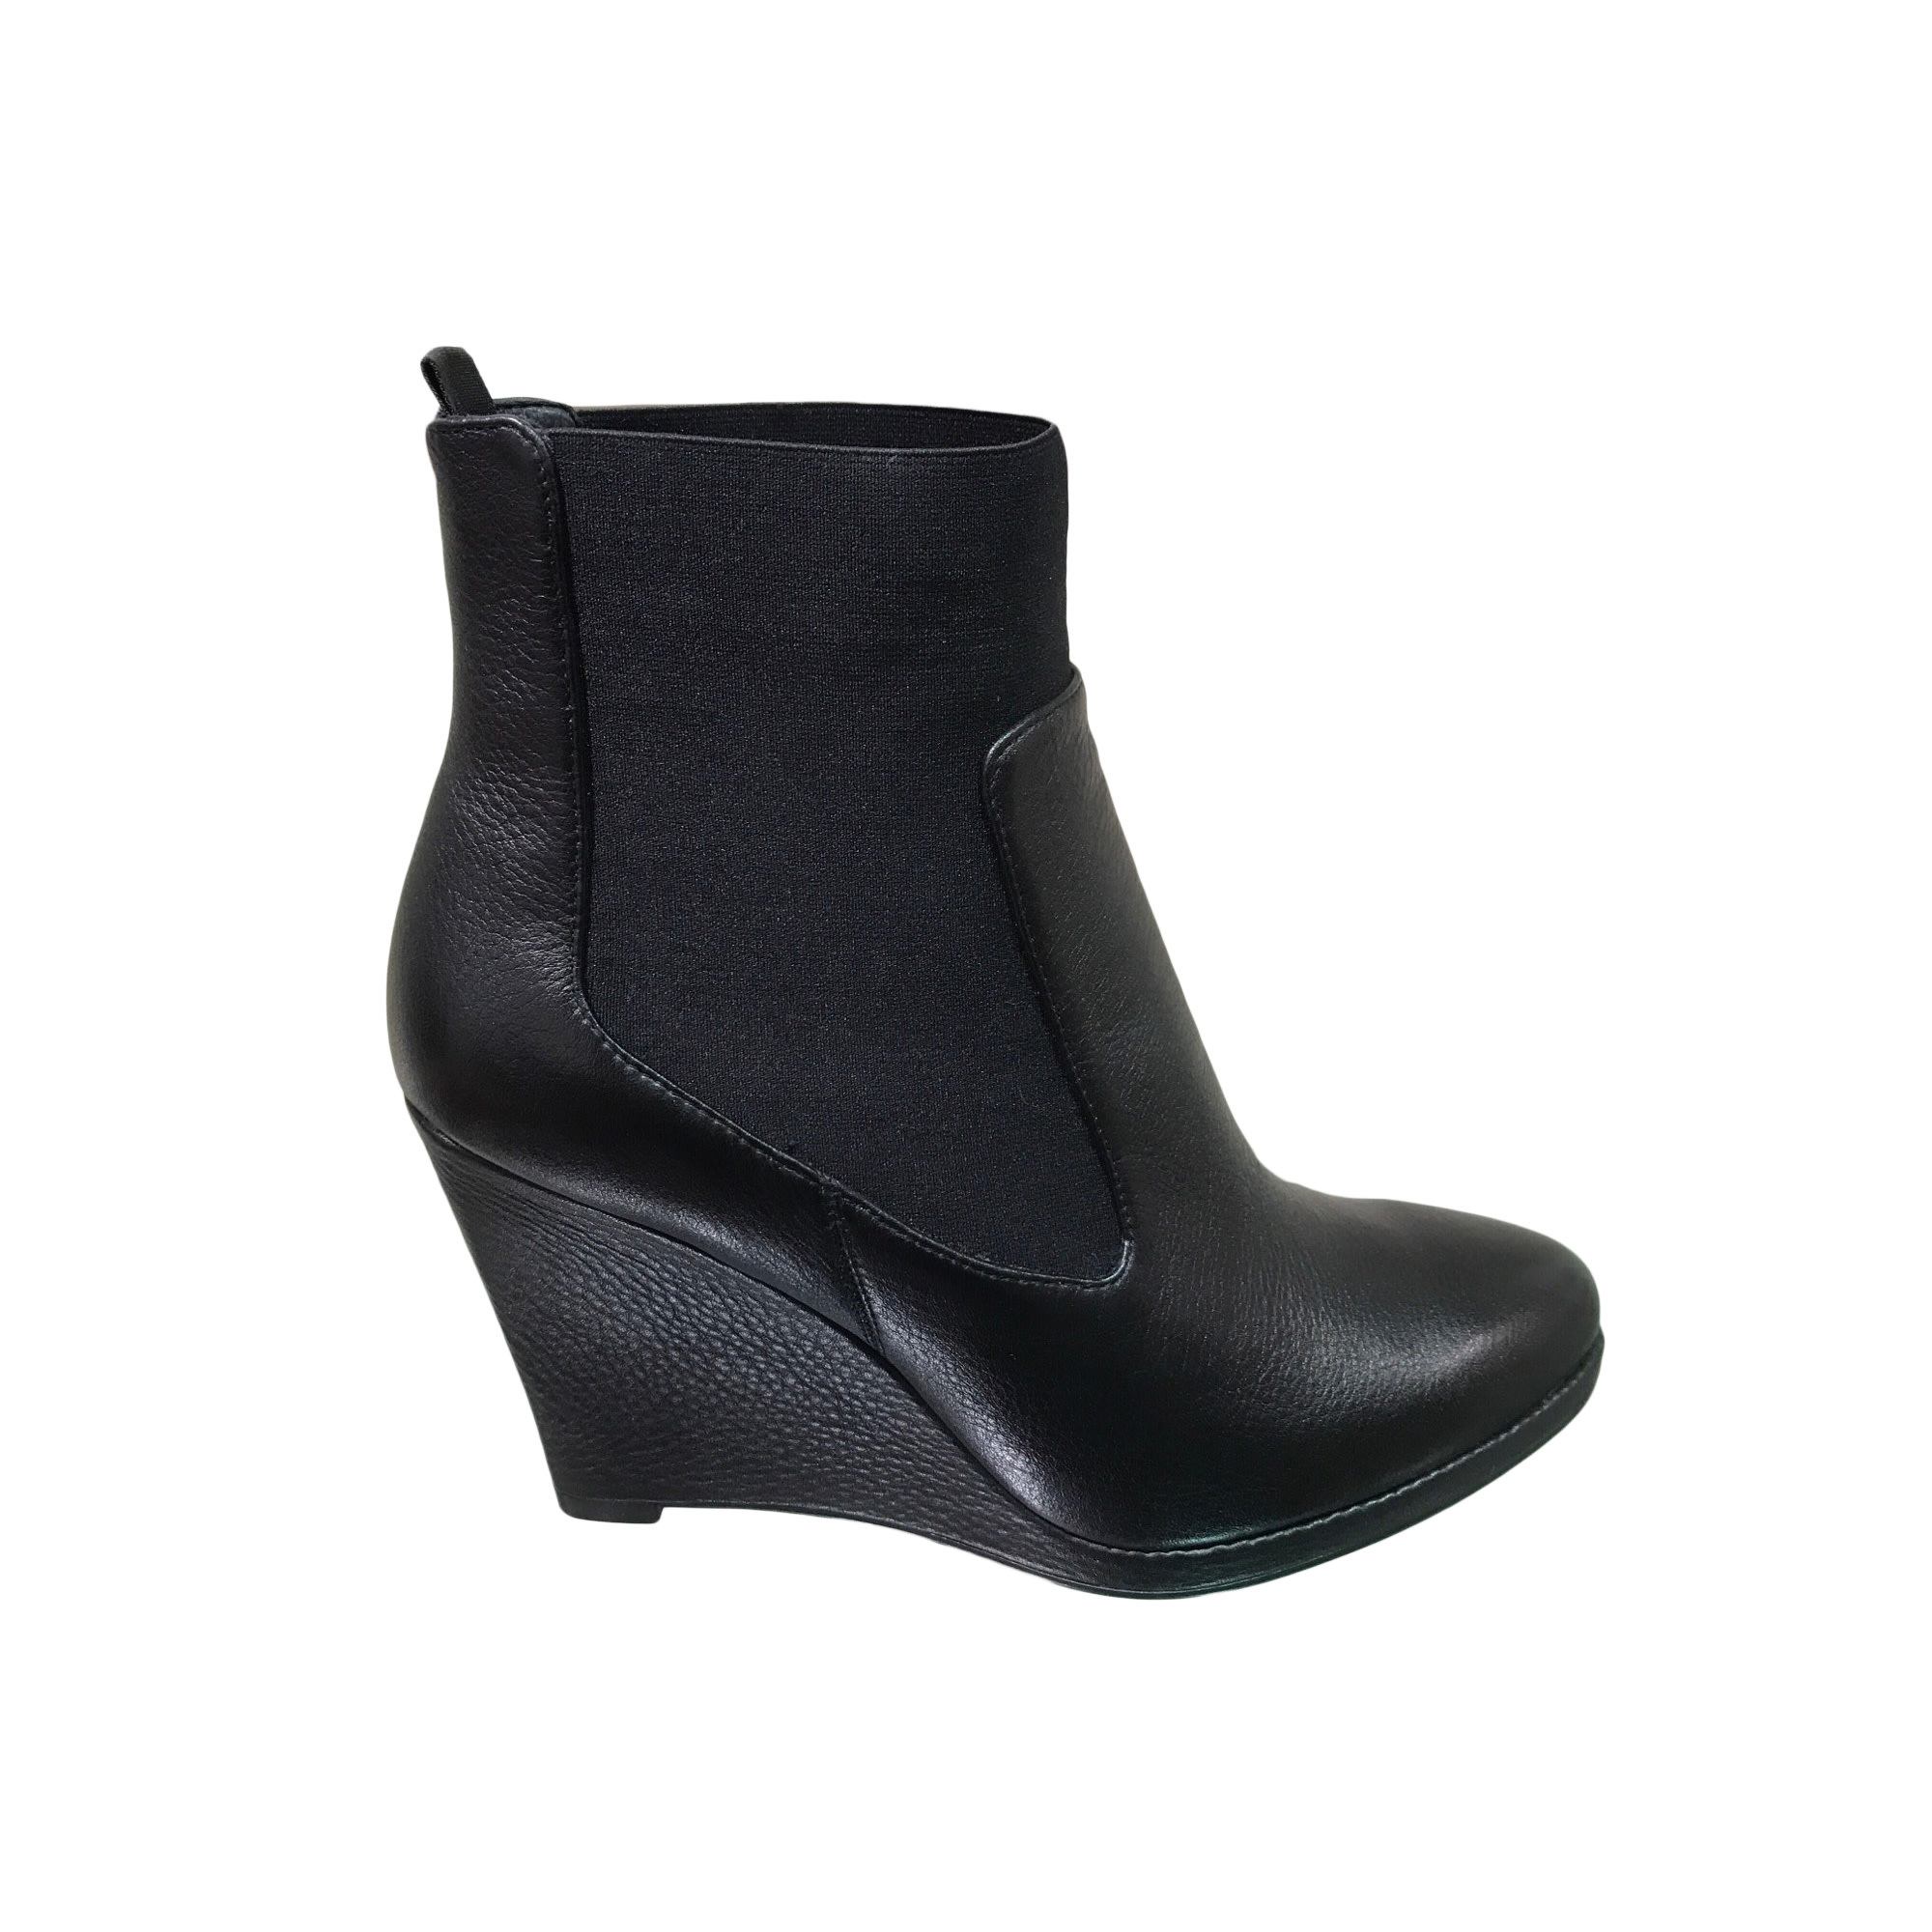 Bottines & low boots à talons LOLA CRUZ Noir